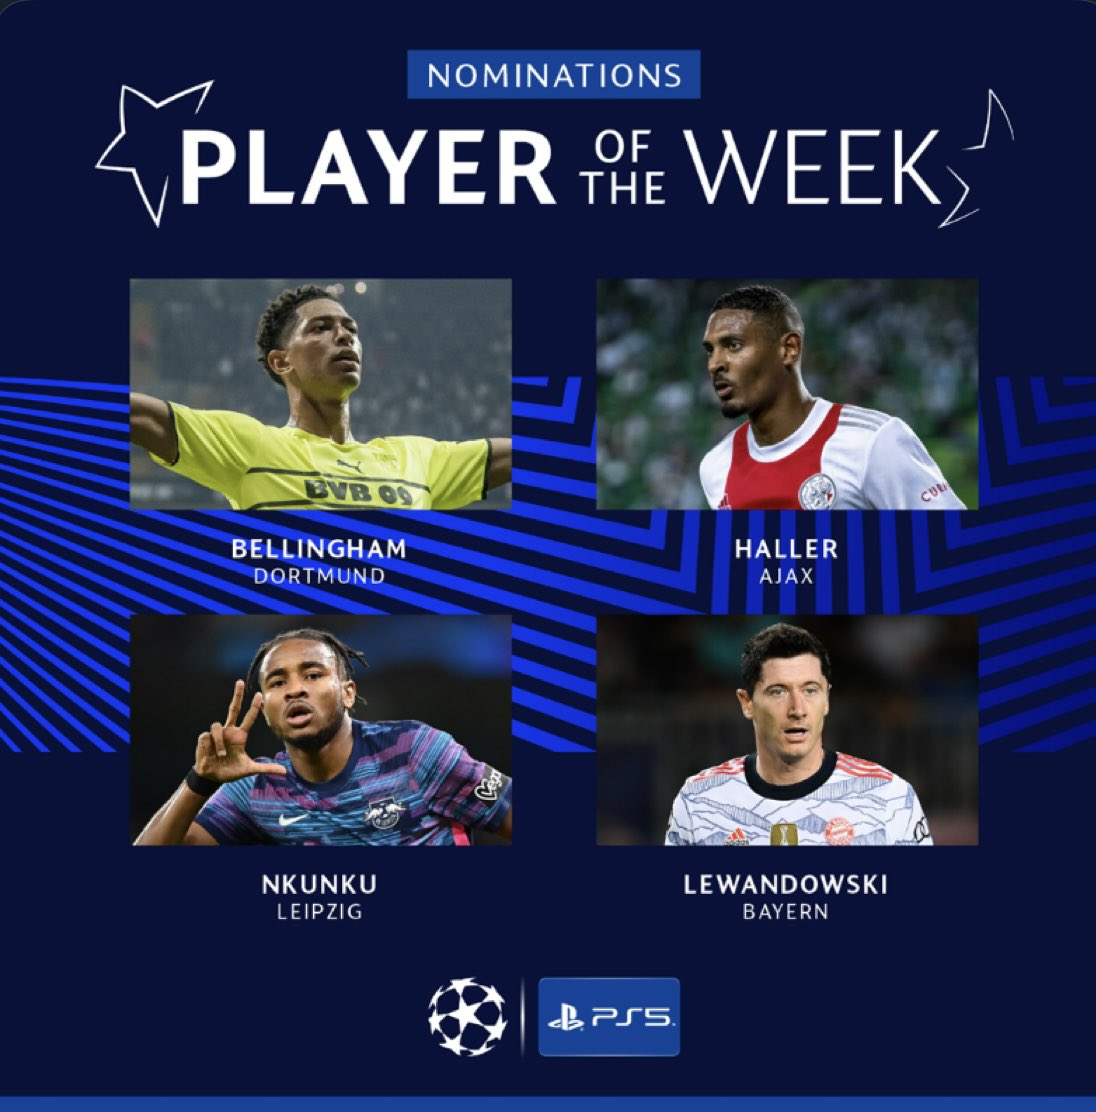 The nominees for the UEFA Champions League Player of the Week award